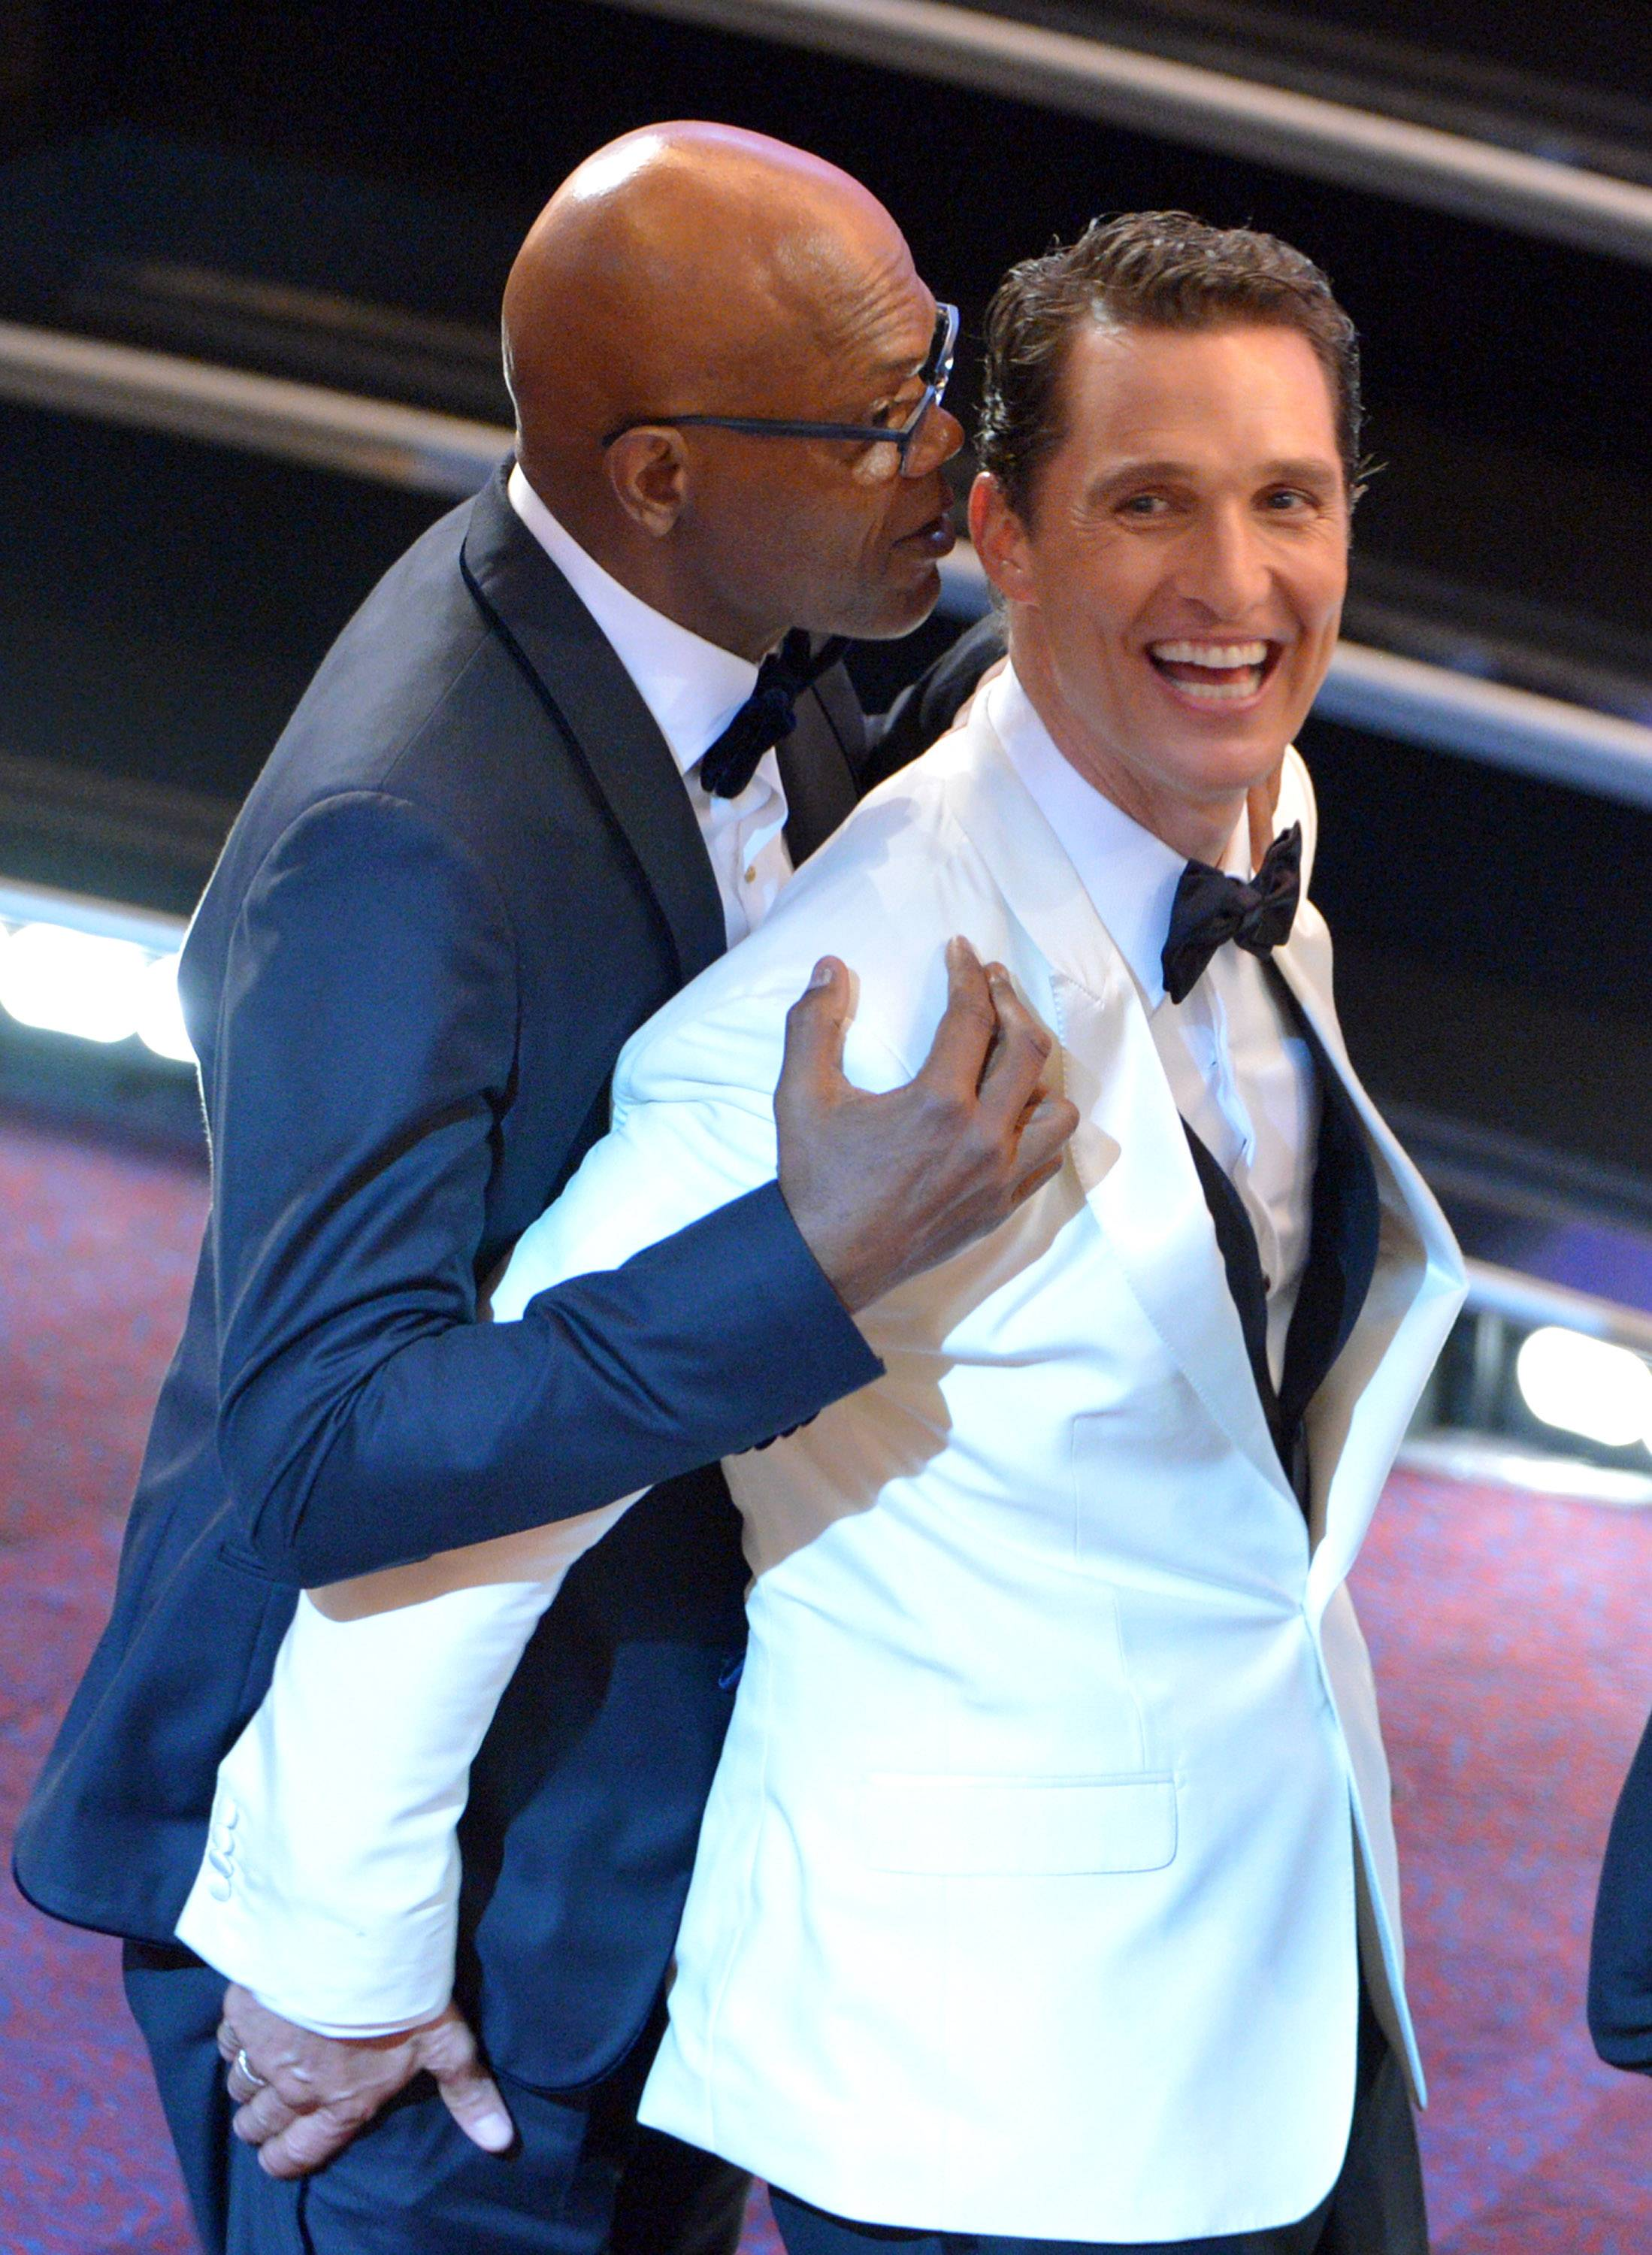 Samuel L. Jackson, left, and Matthew McConaughey embrace in the audience at the Oscars at the Dolby Theatre on Sunday in Los Angeles.